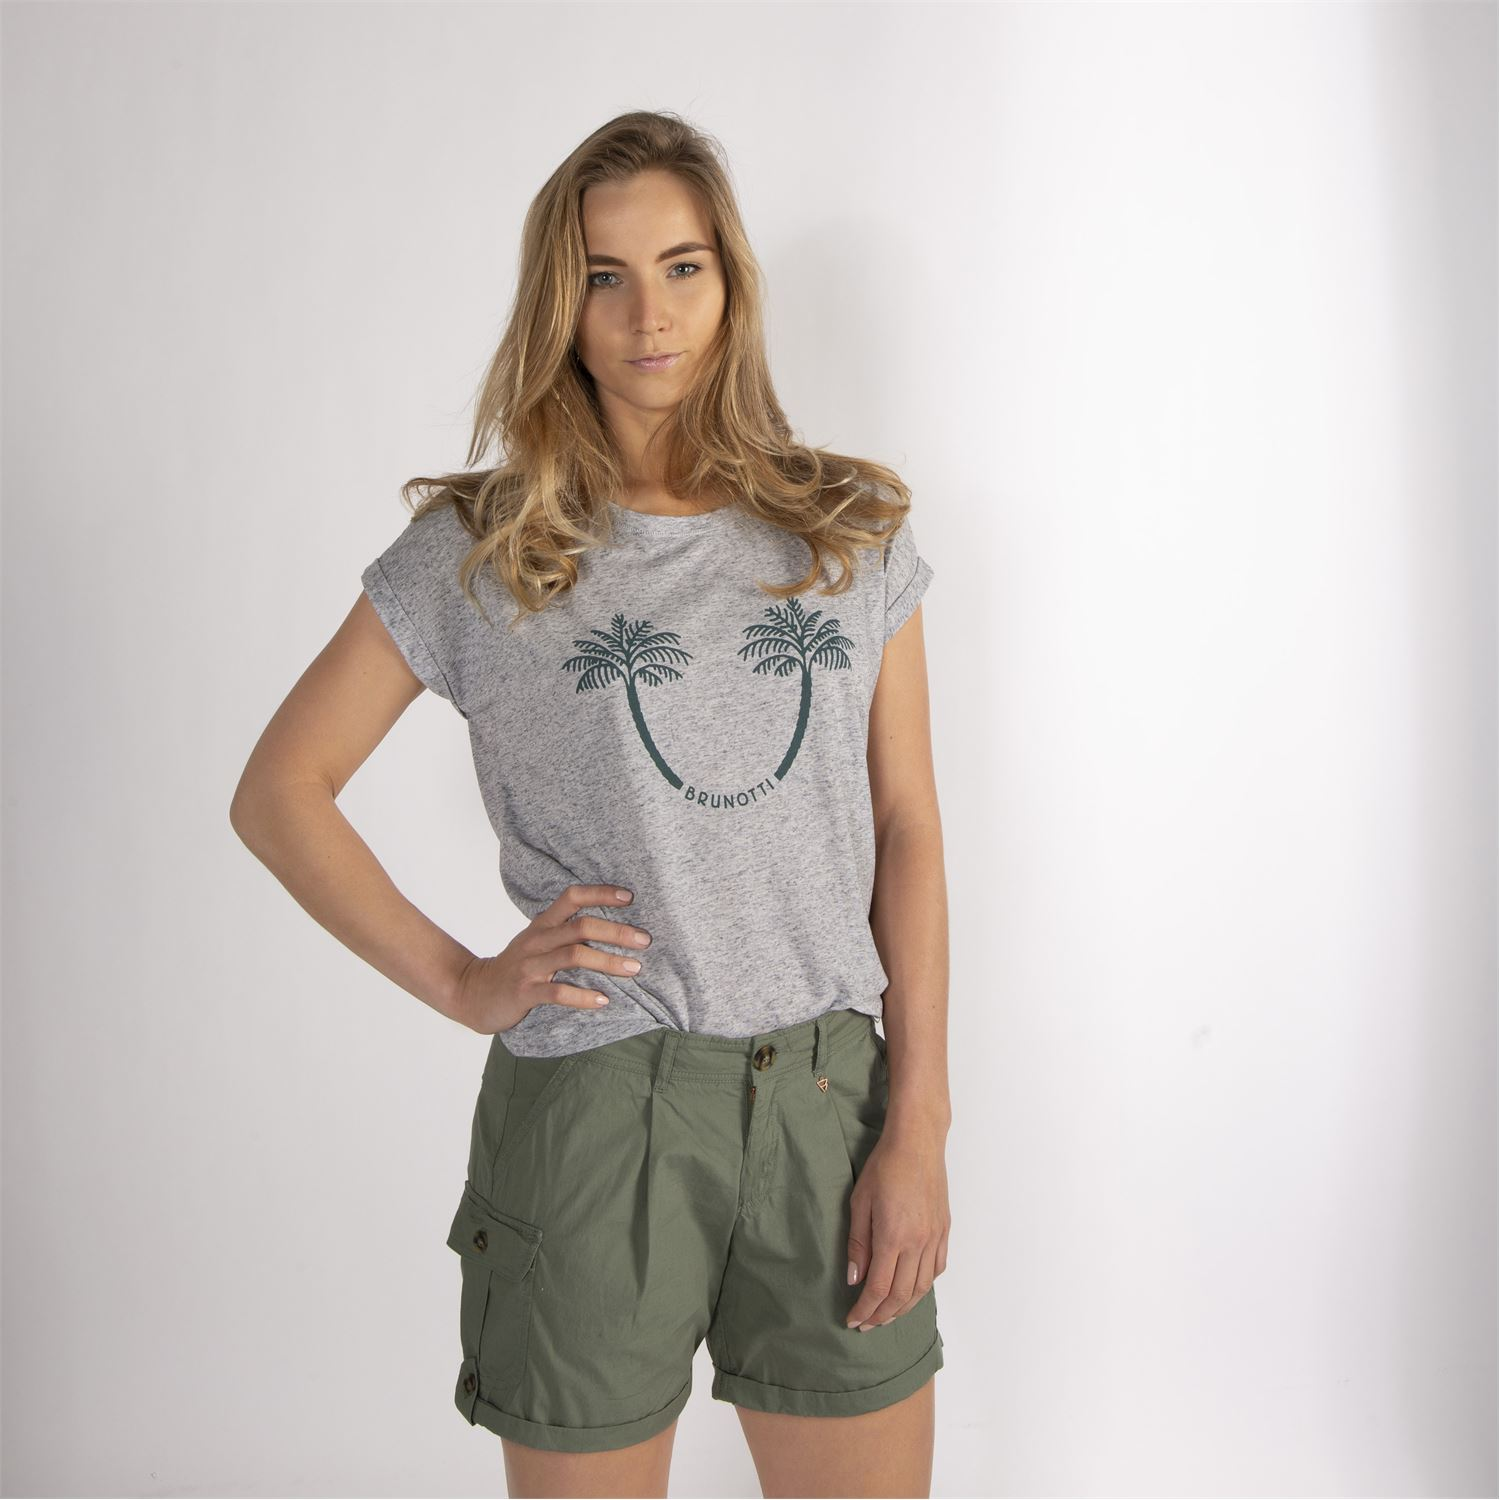 97fa2060850e6 ... women shorts - Brunotti online shop. Our model is 176 cm tall and wears  size M